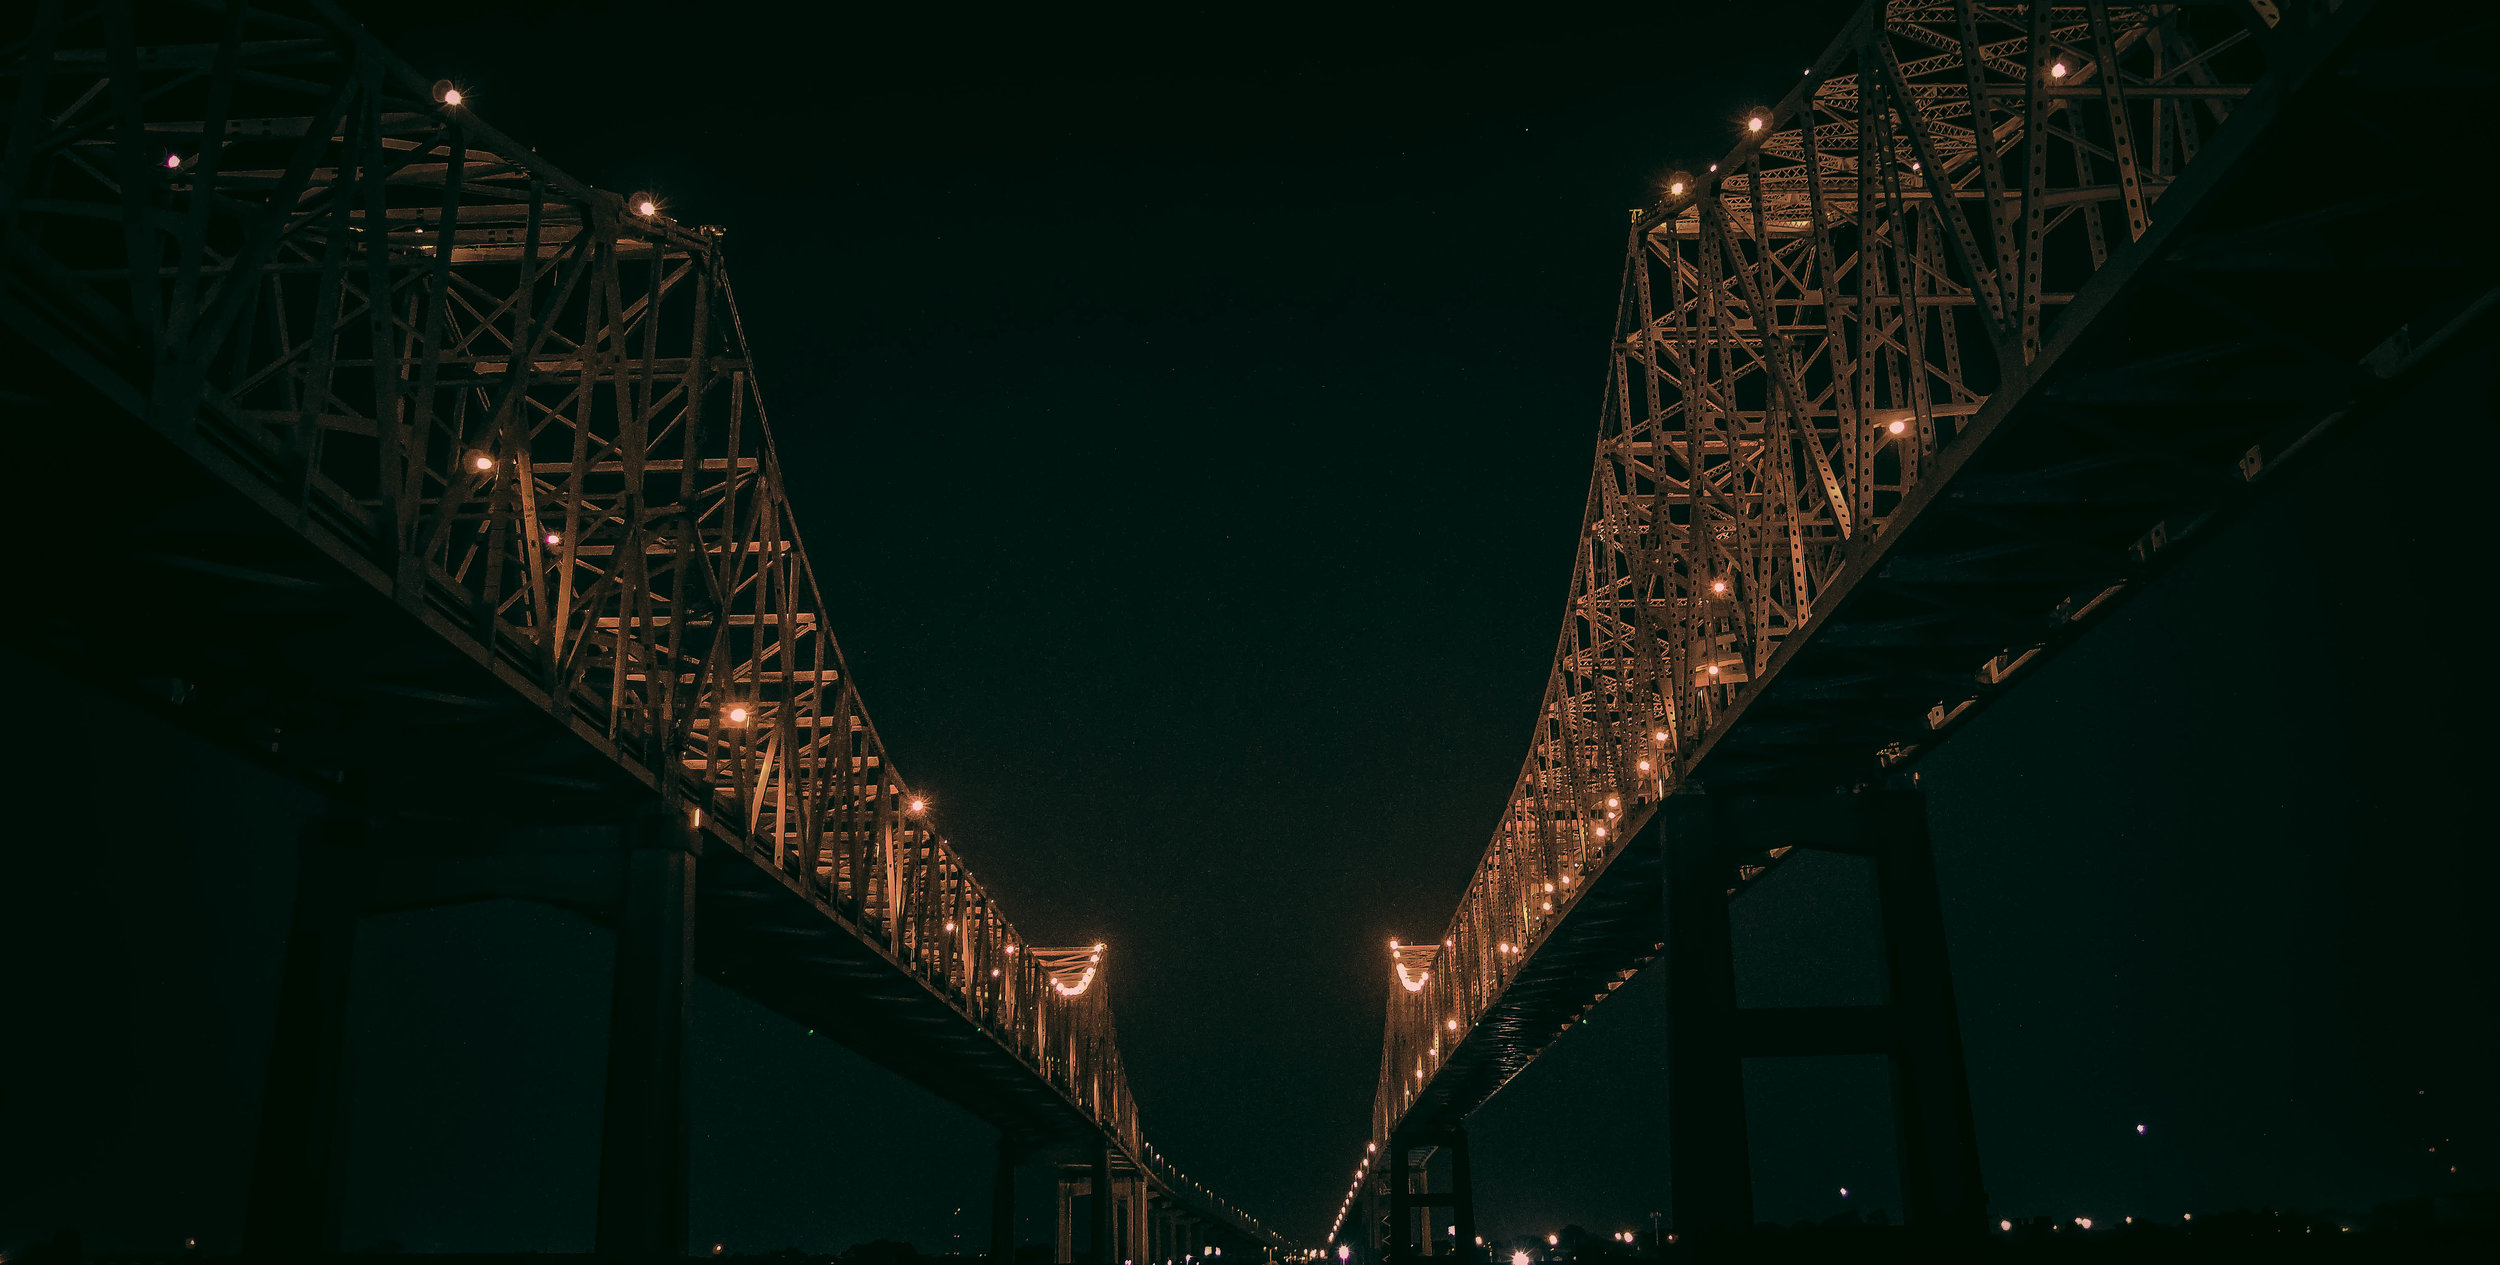 Between the bridges.jpg